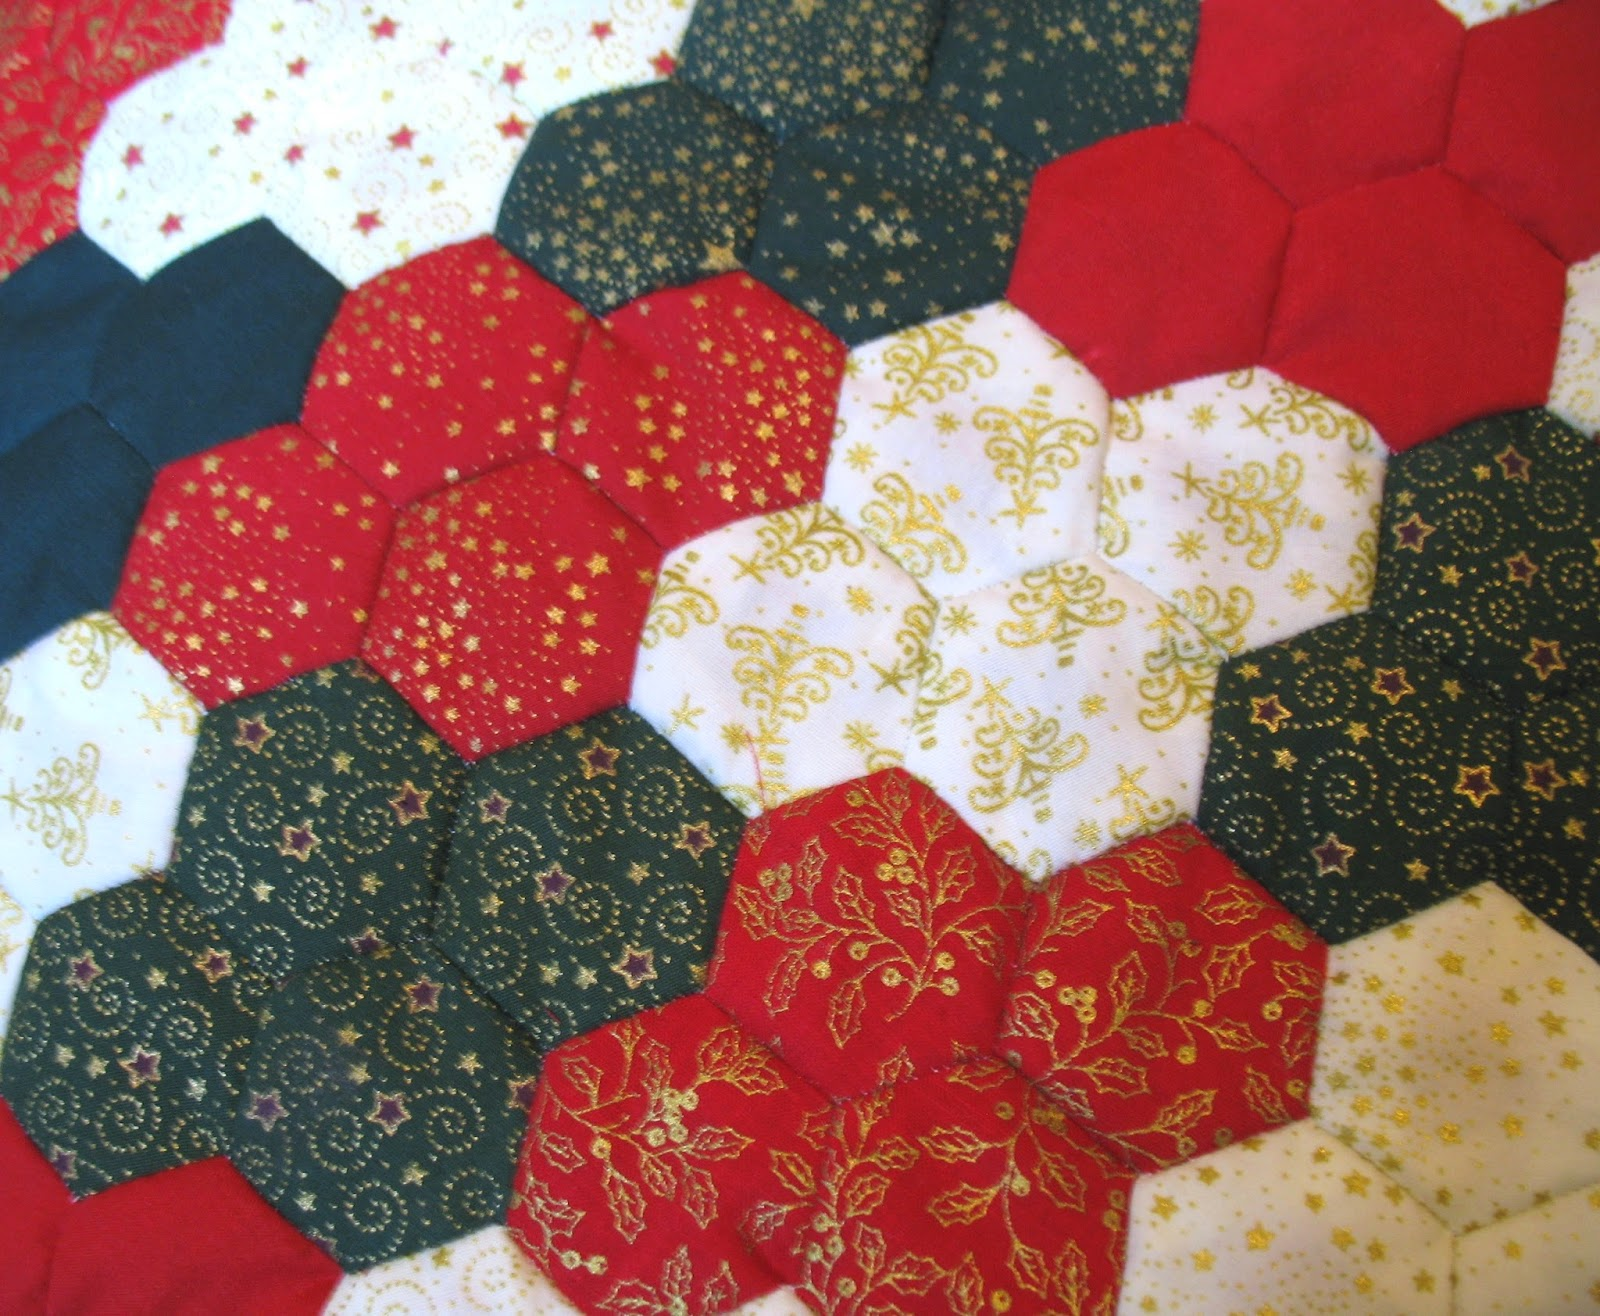 https://www.etsy.com/listing/212399739/patchwork-christmas-hexagon-cushion?ref=shop_home_active_1